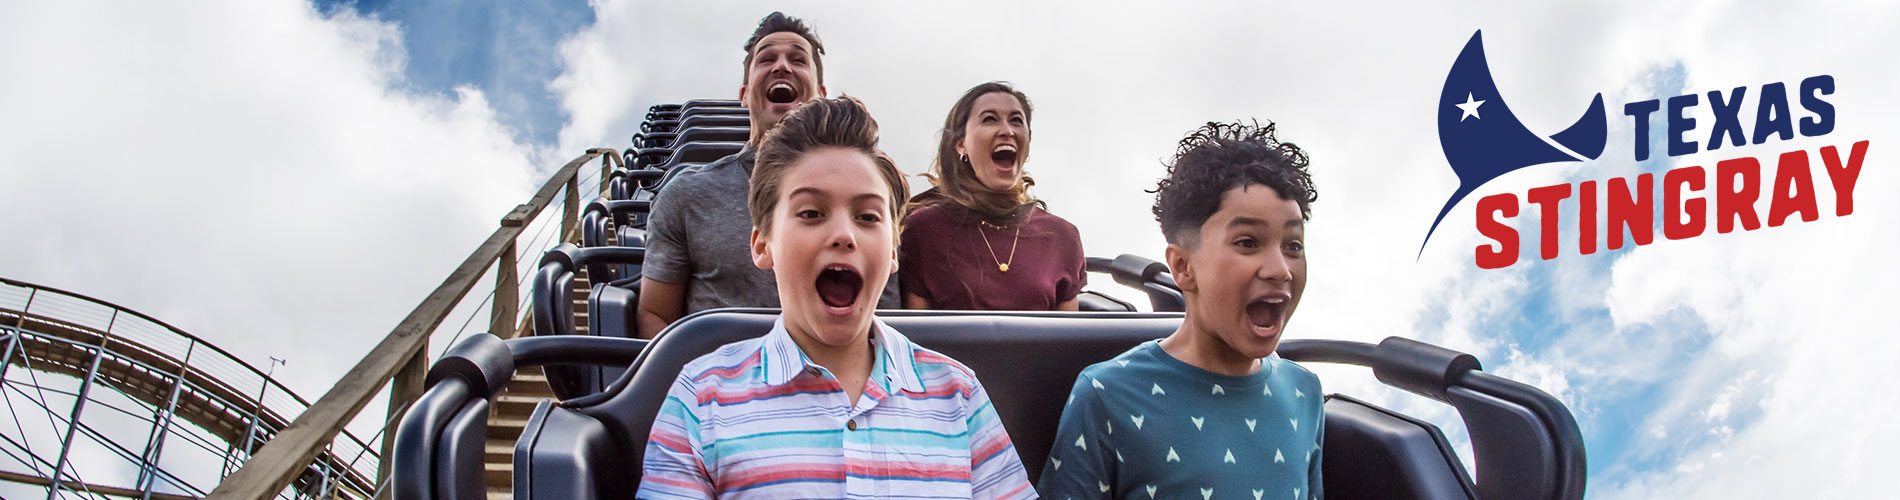 Ride the all new wooden roller coaster at SeaWorld San Antonio